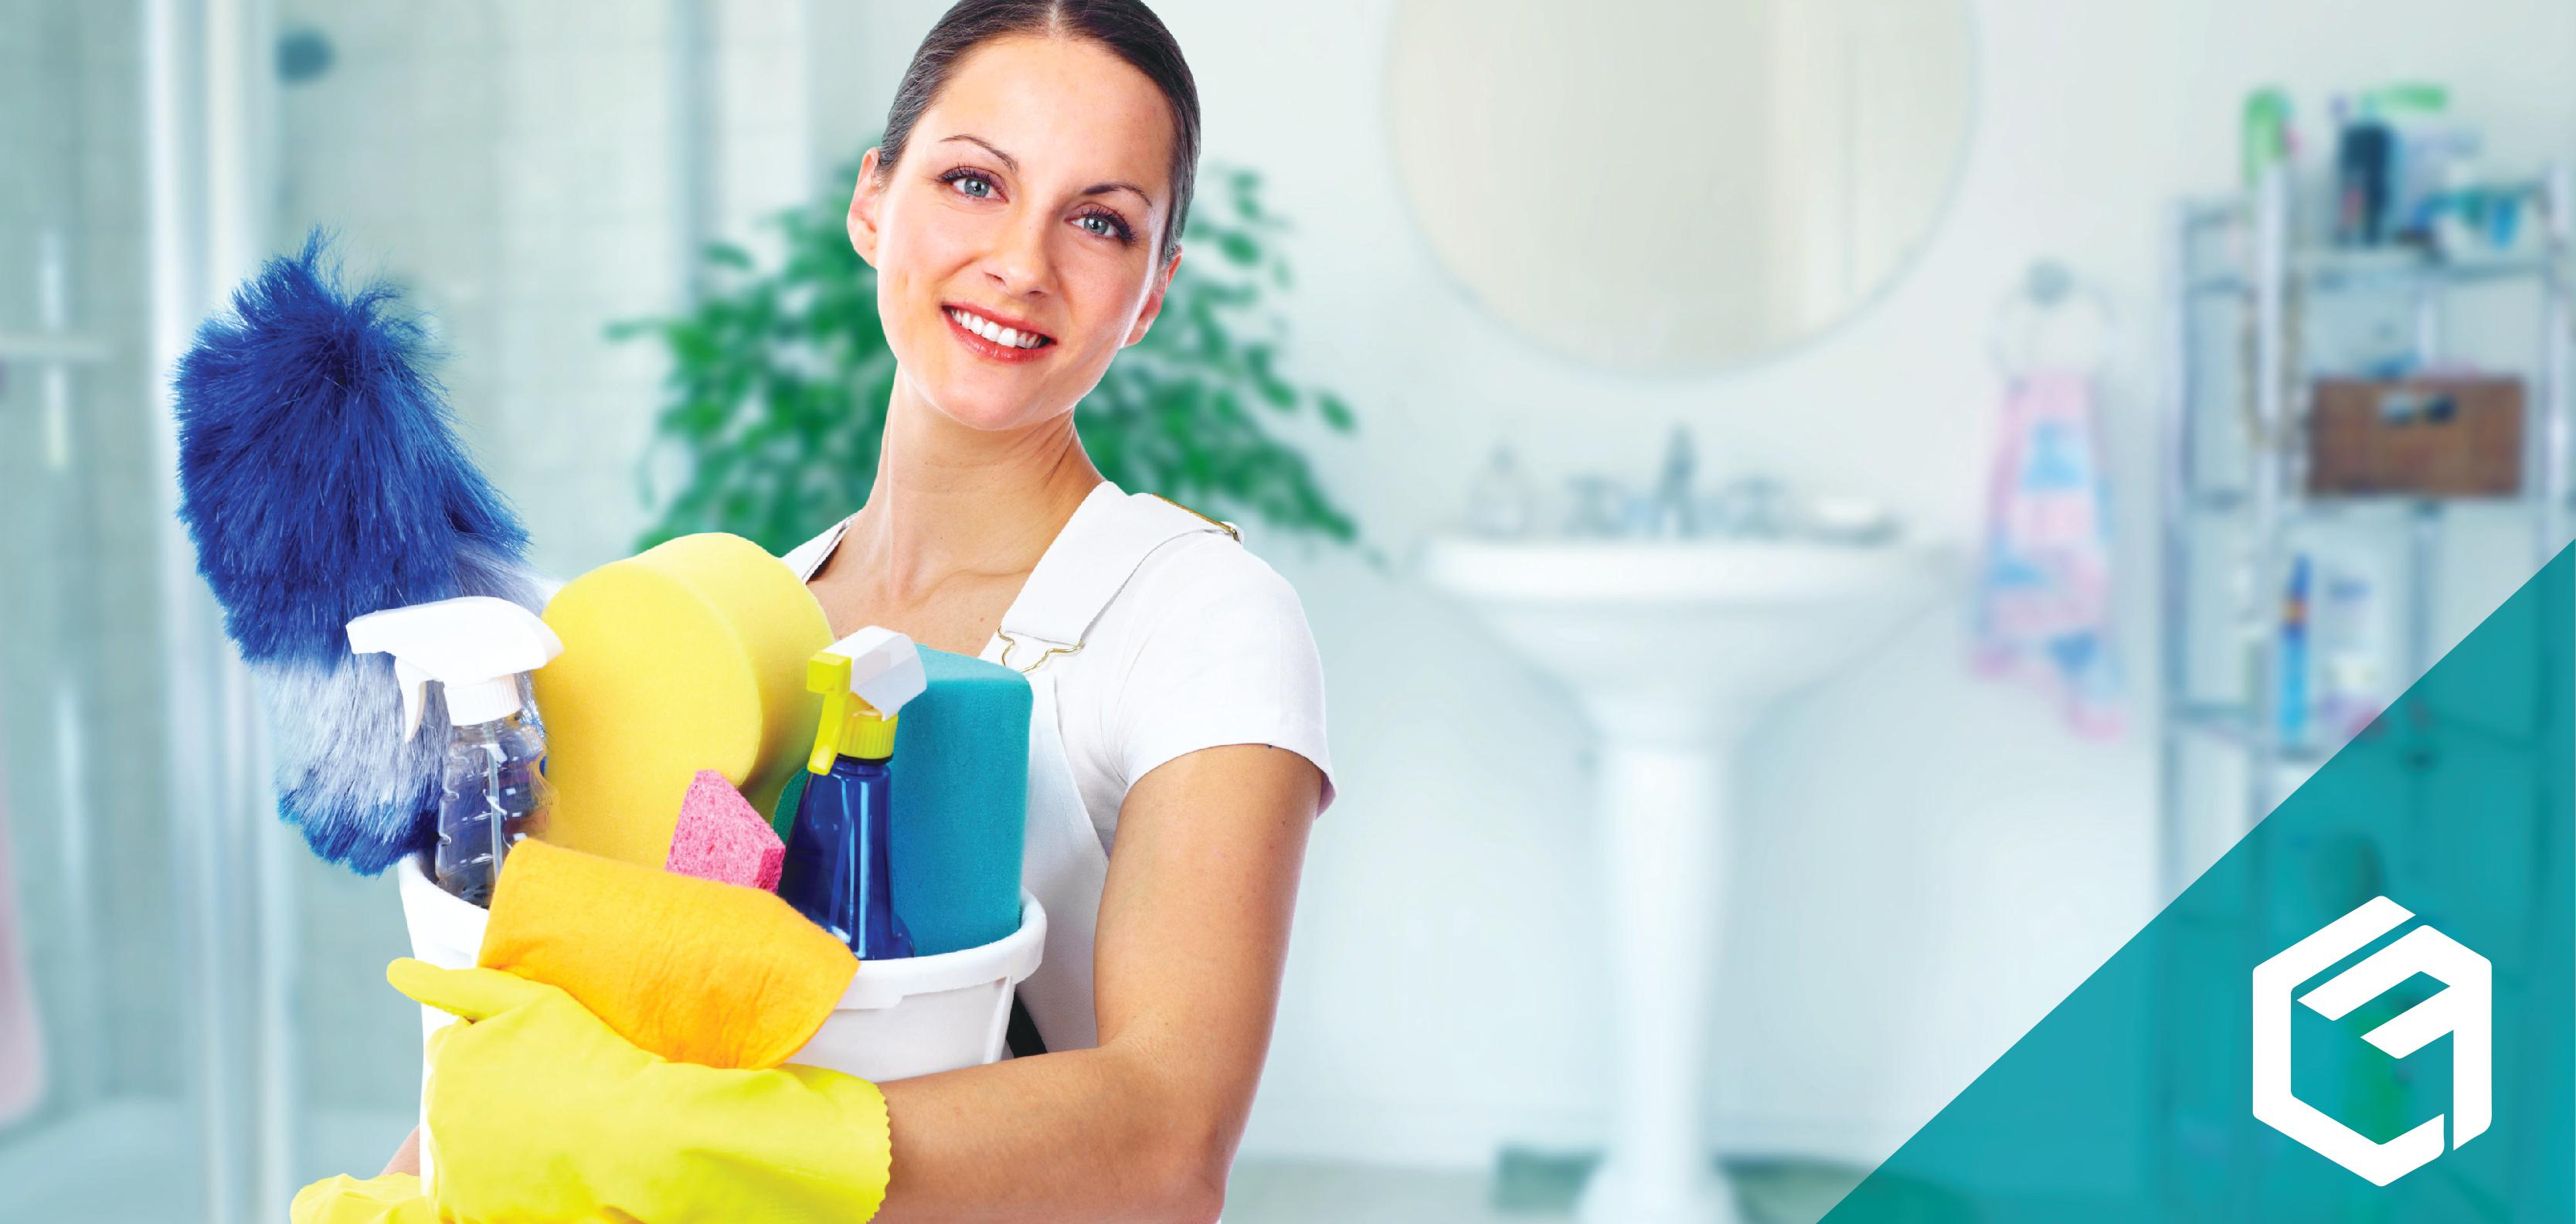 clean-finishers-com-home-cleaning-services-in-dubai